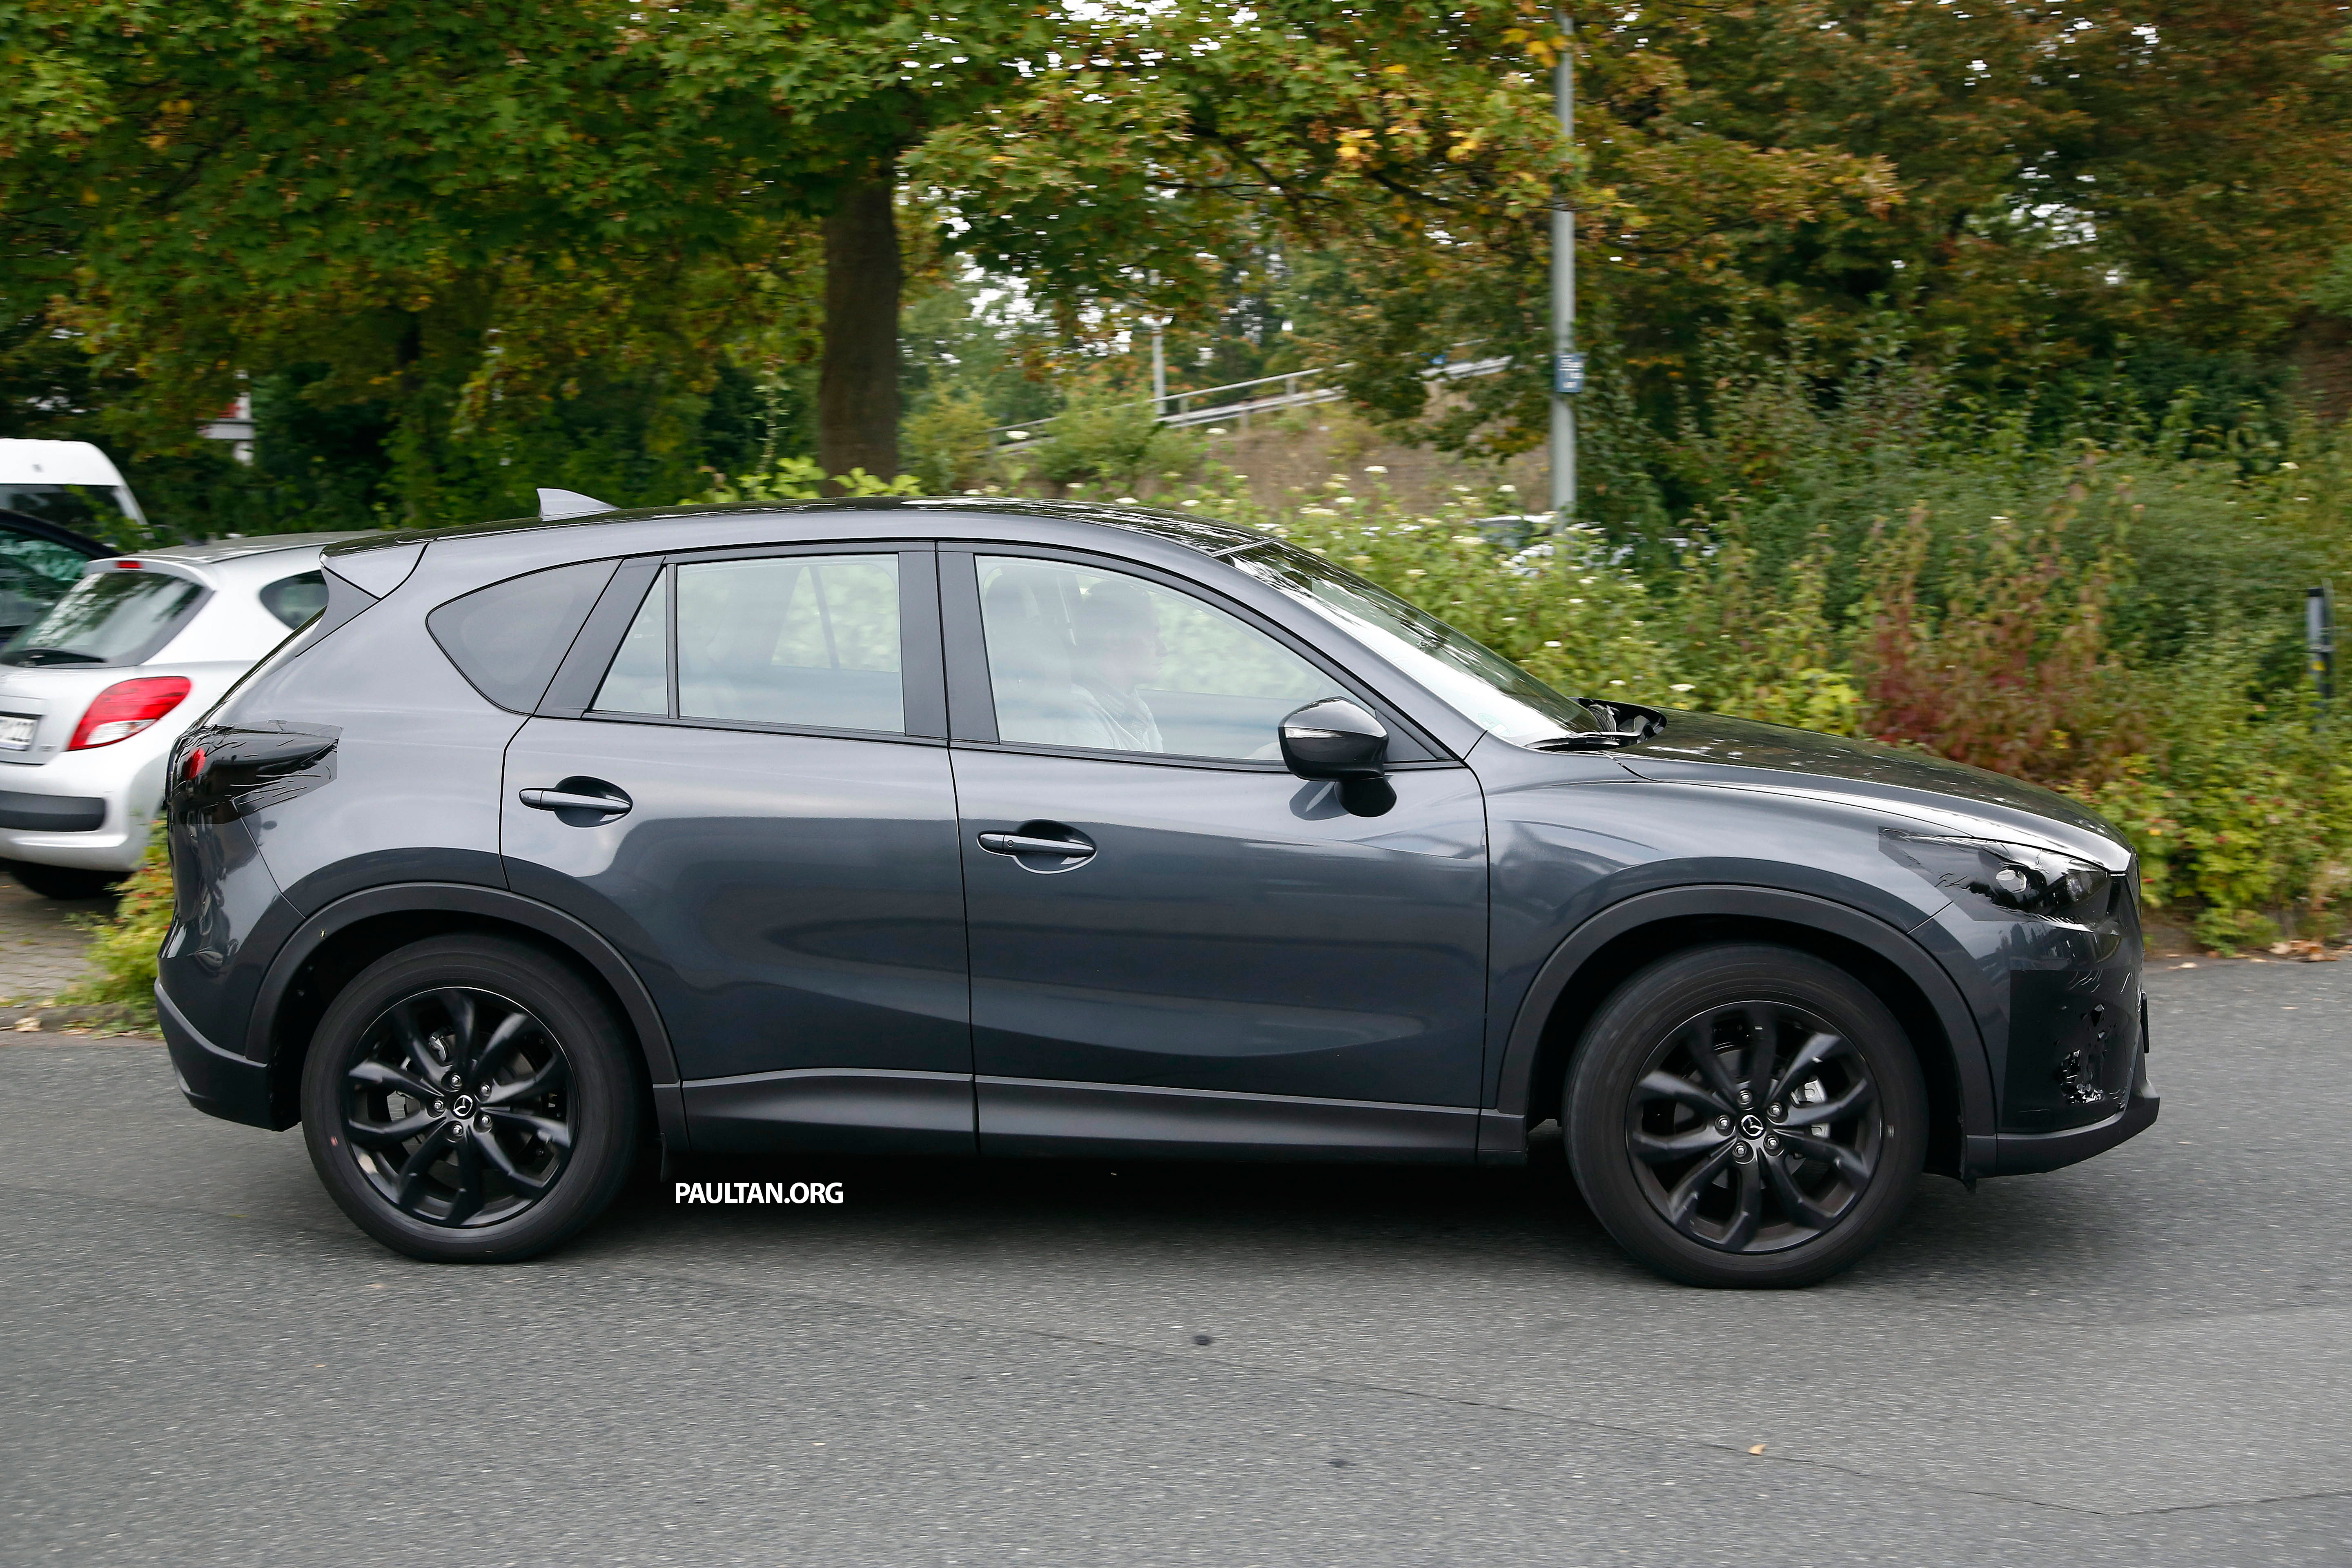 2018 Mazda Cx5 >> SPYSHOTS: Mazda CX-5 facelift – new grille and lamps Paul Tan - Image 271087